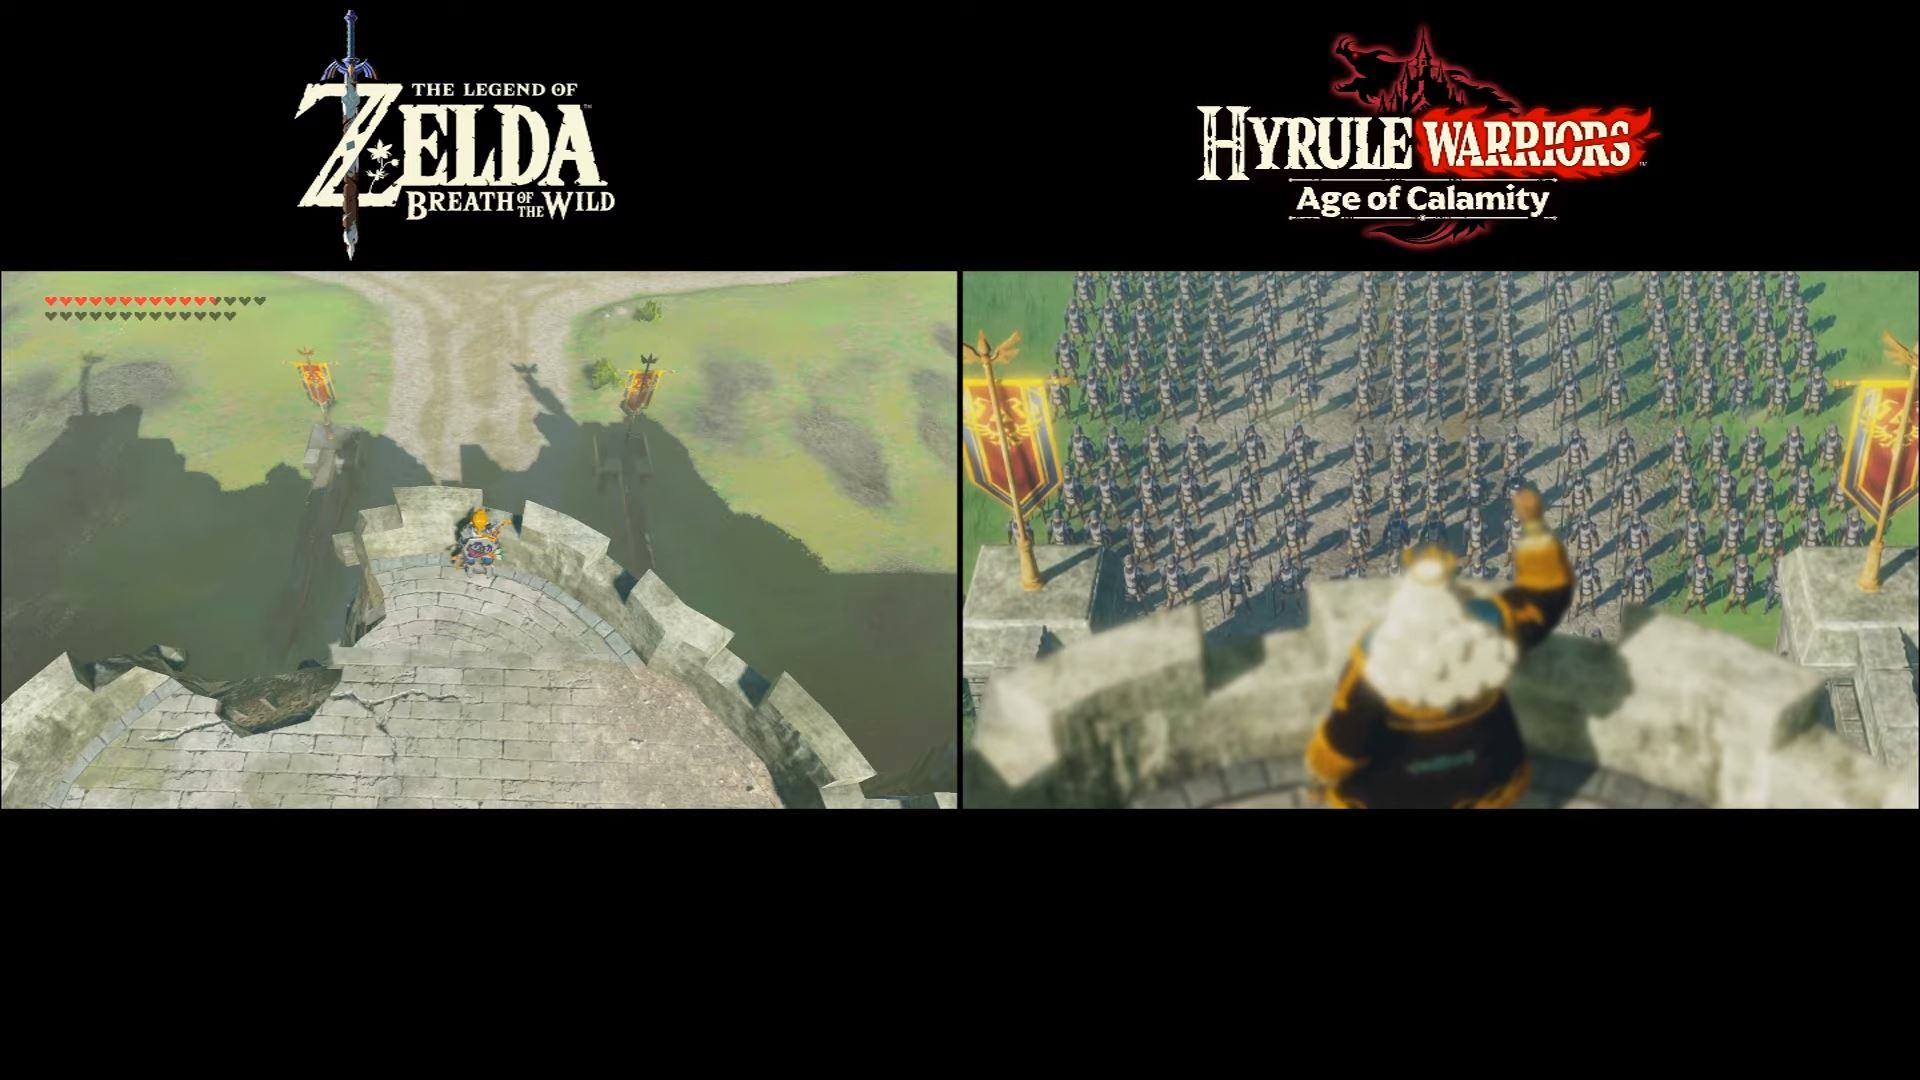 Breath Of The Wild Vs Hyrule Warriors Age Of Calamity How Similar Are They Comparison Gonintendo